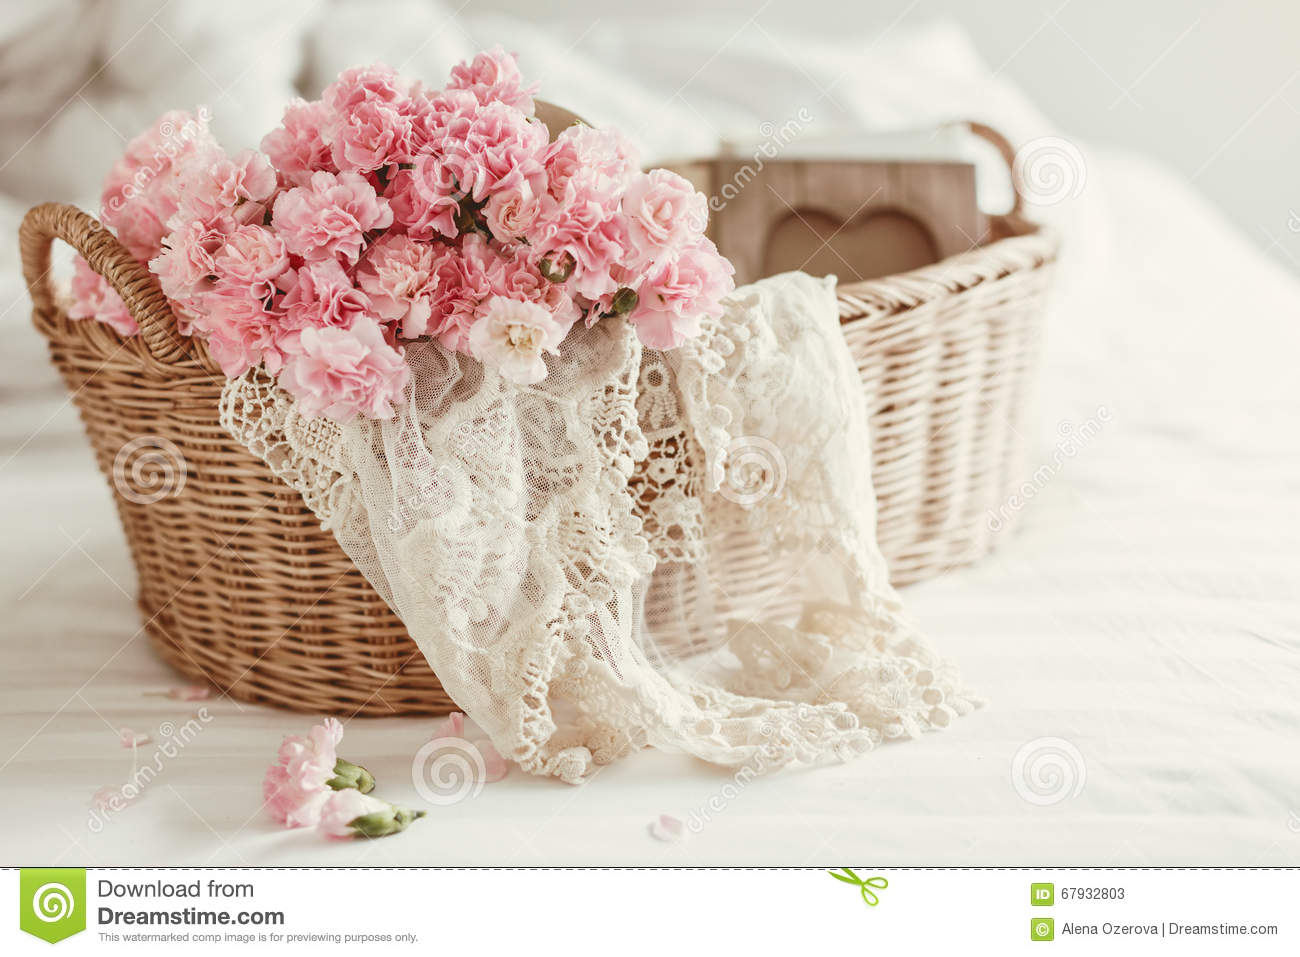 Shabby chic flowers stock image. Image of love, bedroom - 67932803